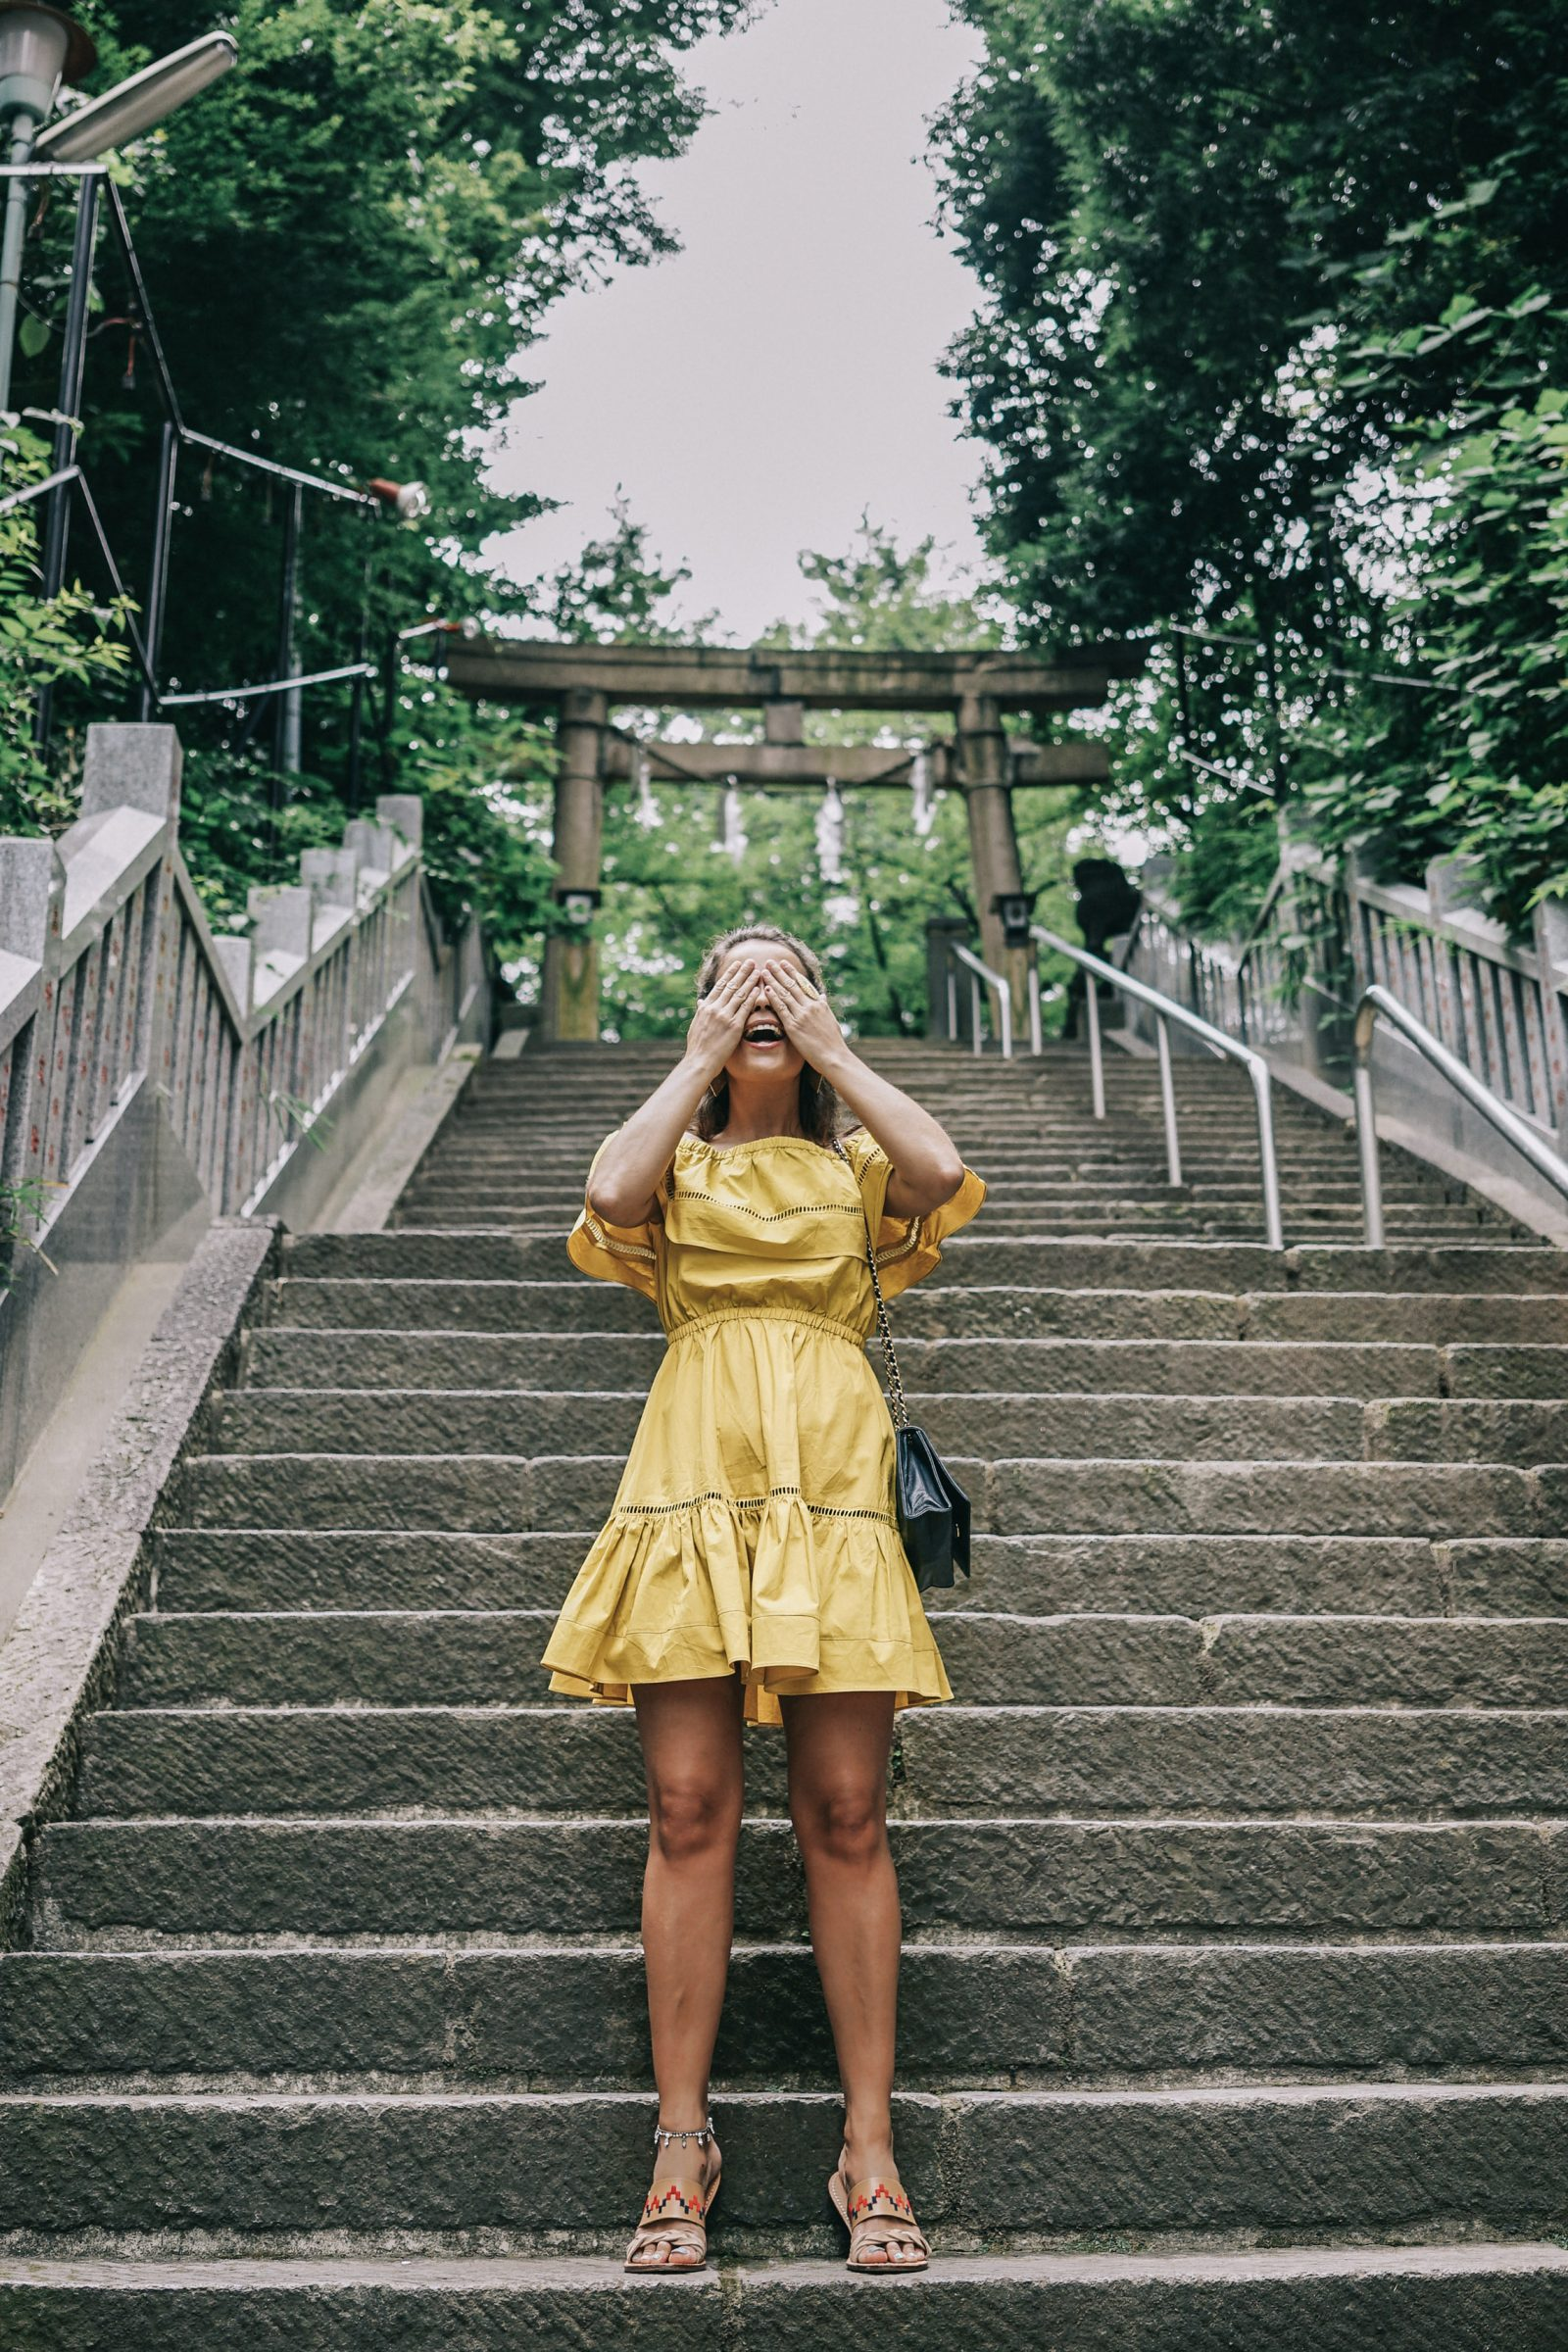 tokyo_travel_guide-outfit-collage_vintage-street_style-off_the_shoulders_dress-mustard_dress-soludos_sandals-chanel_vintage-bag-vintage_stores-16